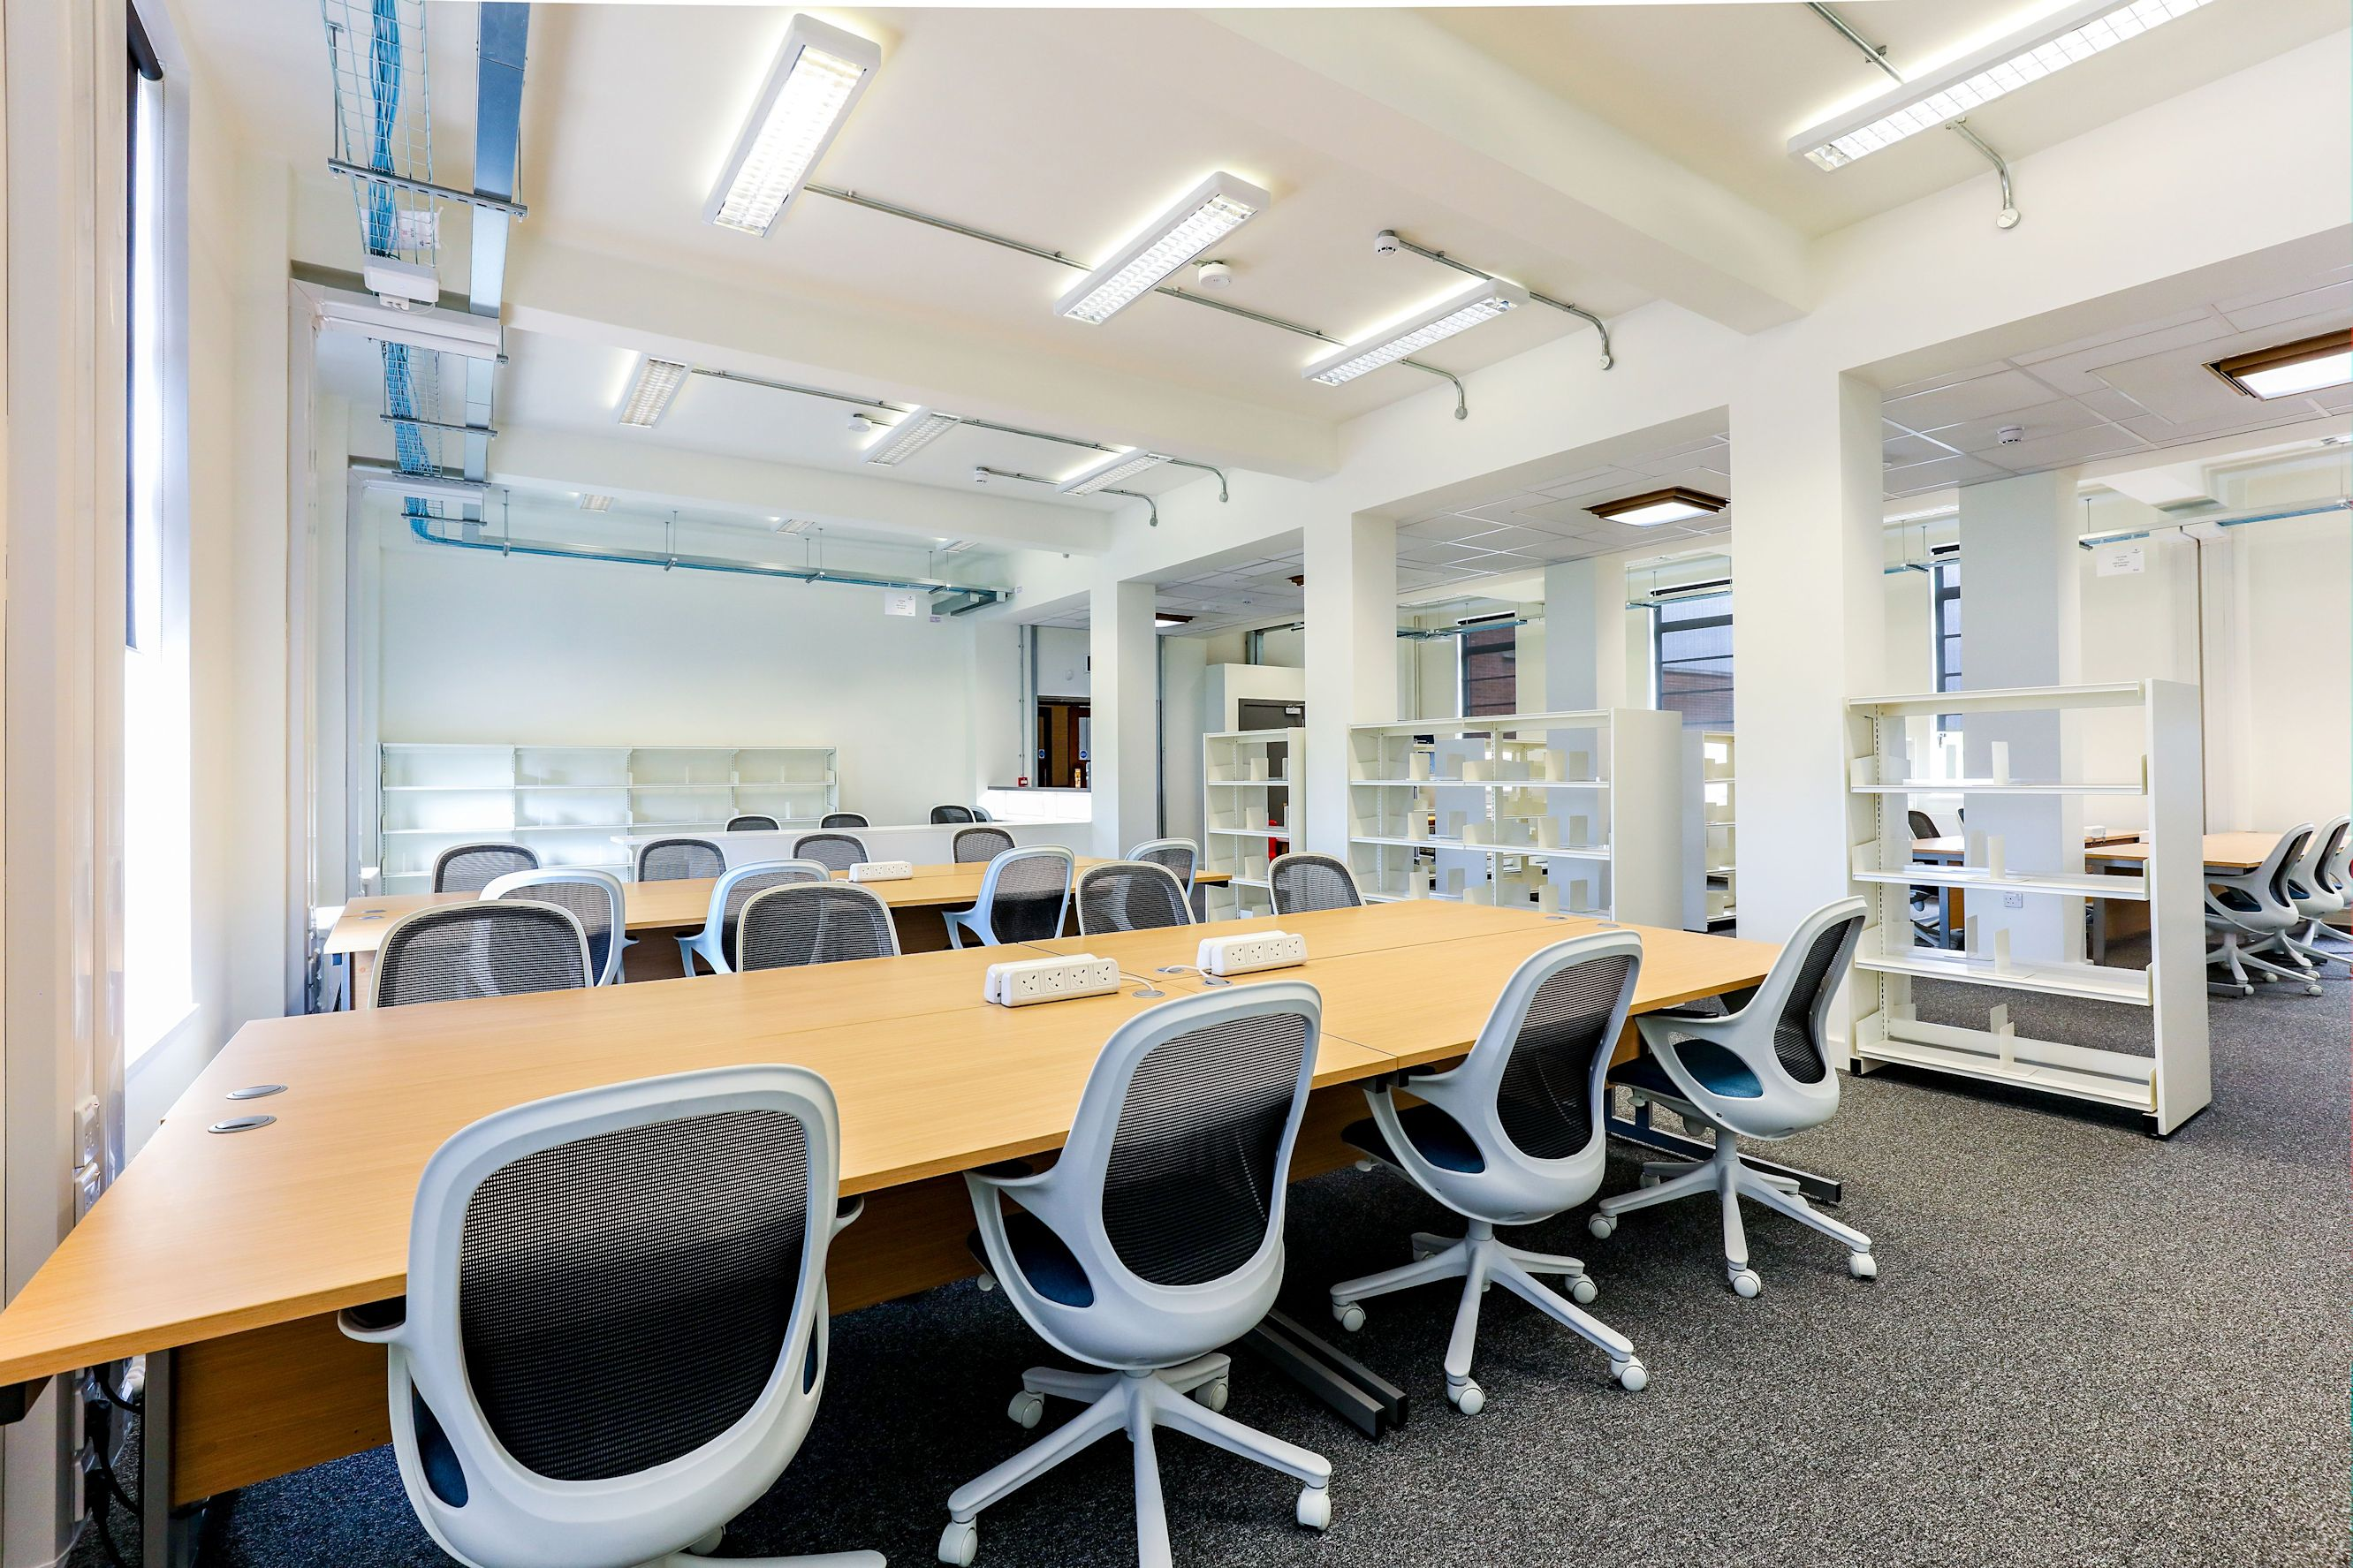 Coventry University classroom midjpg